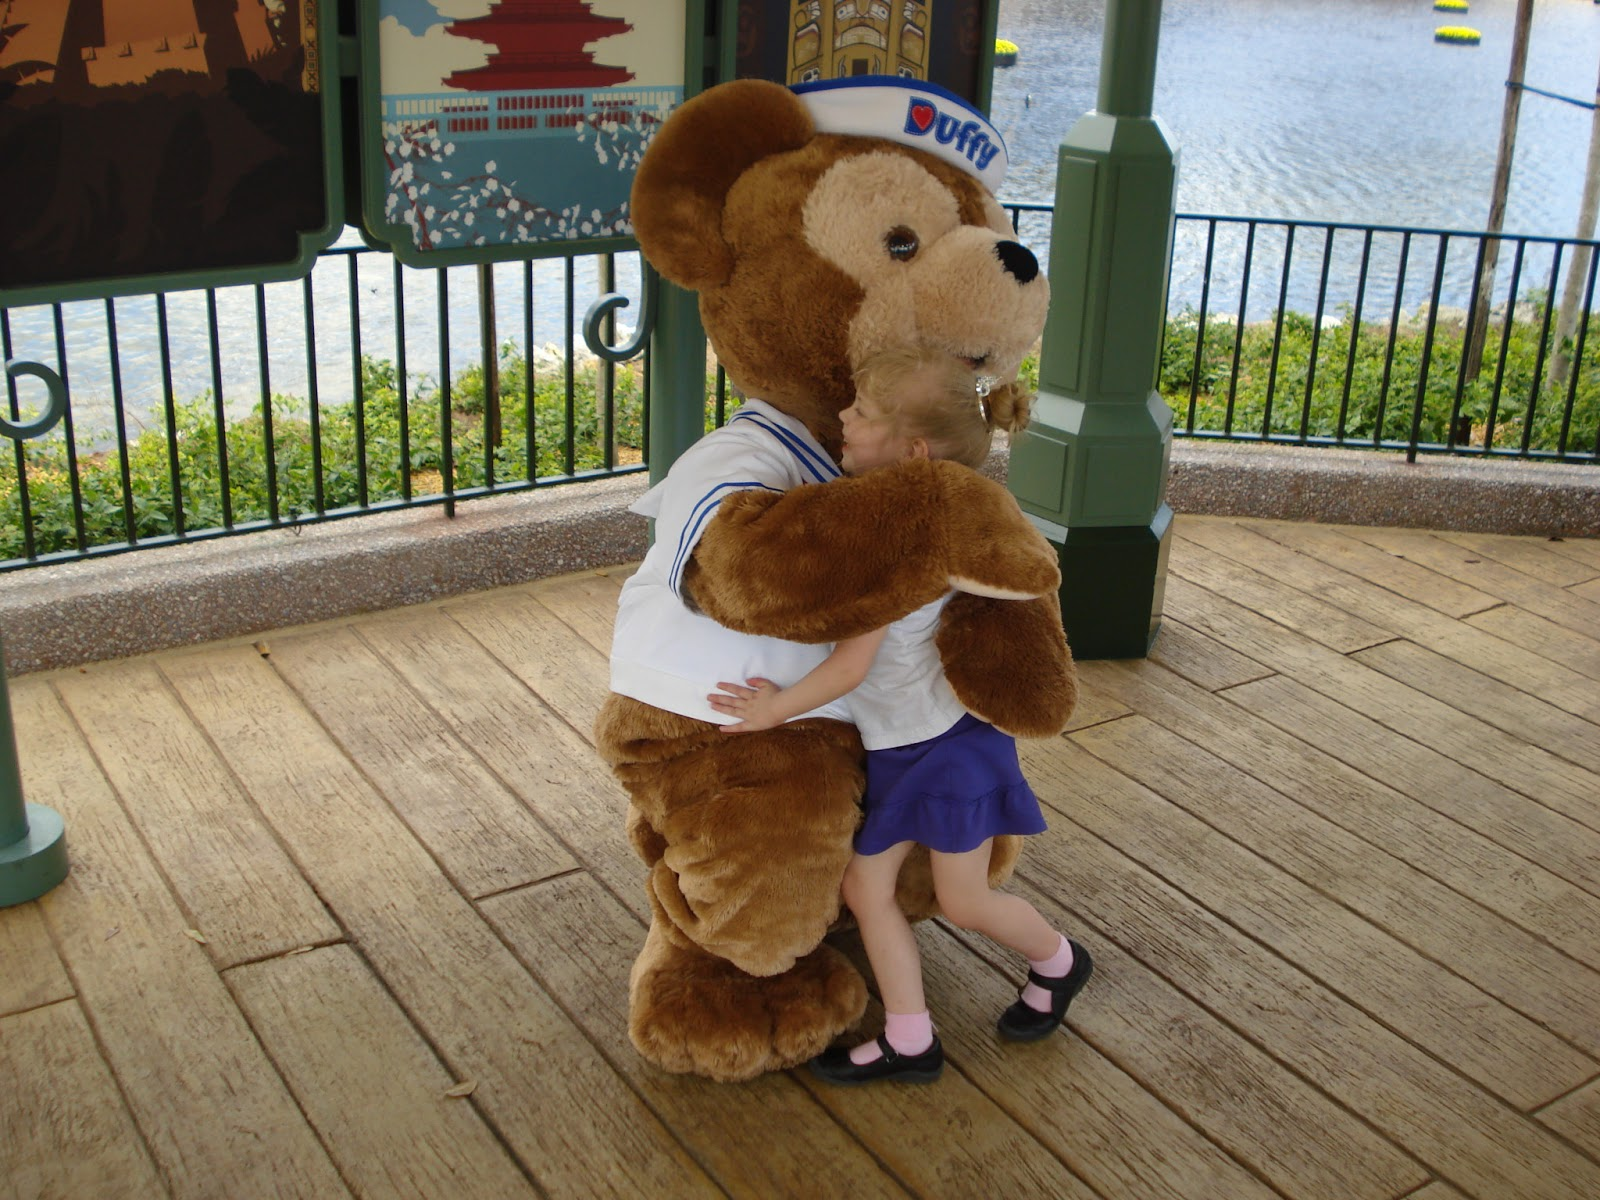 Duffy hug - one of my favorite memories!